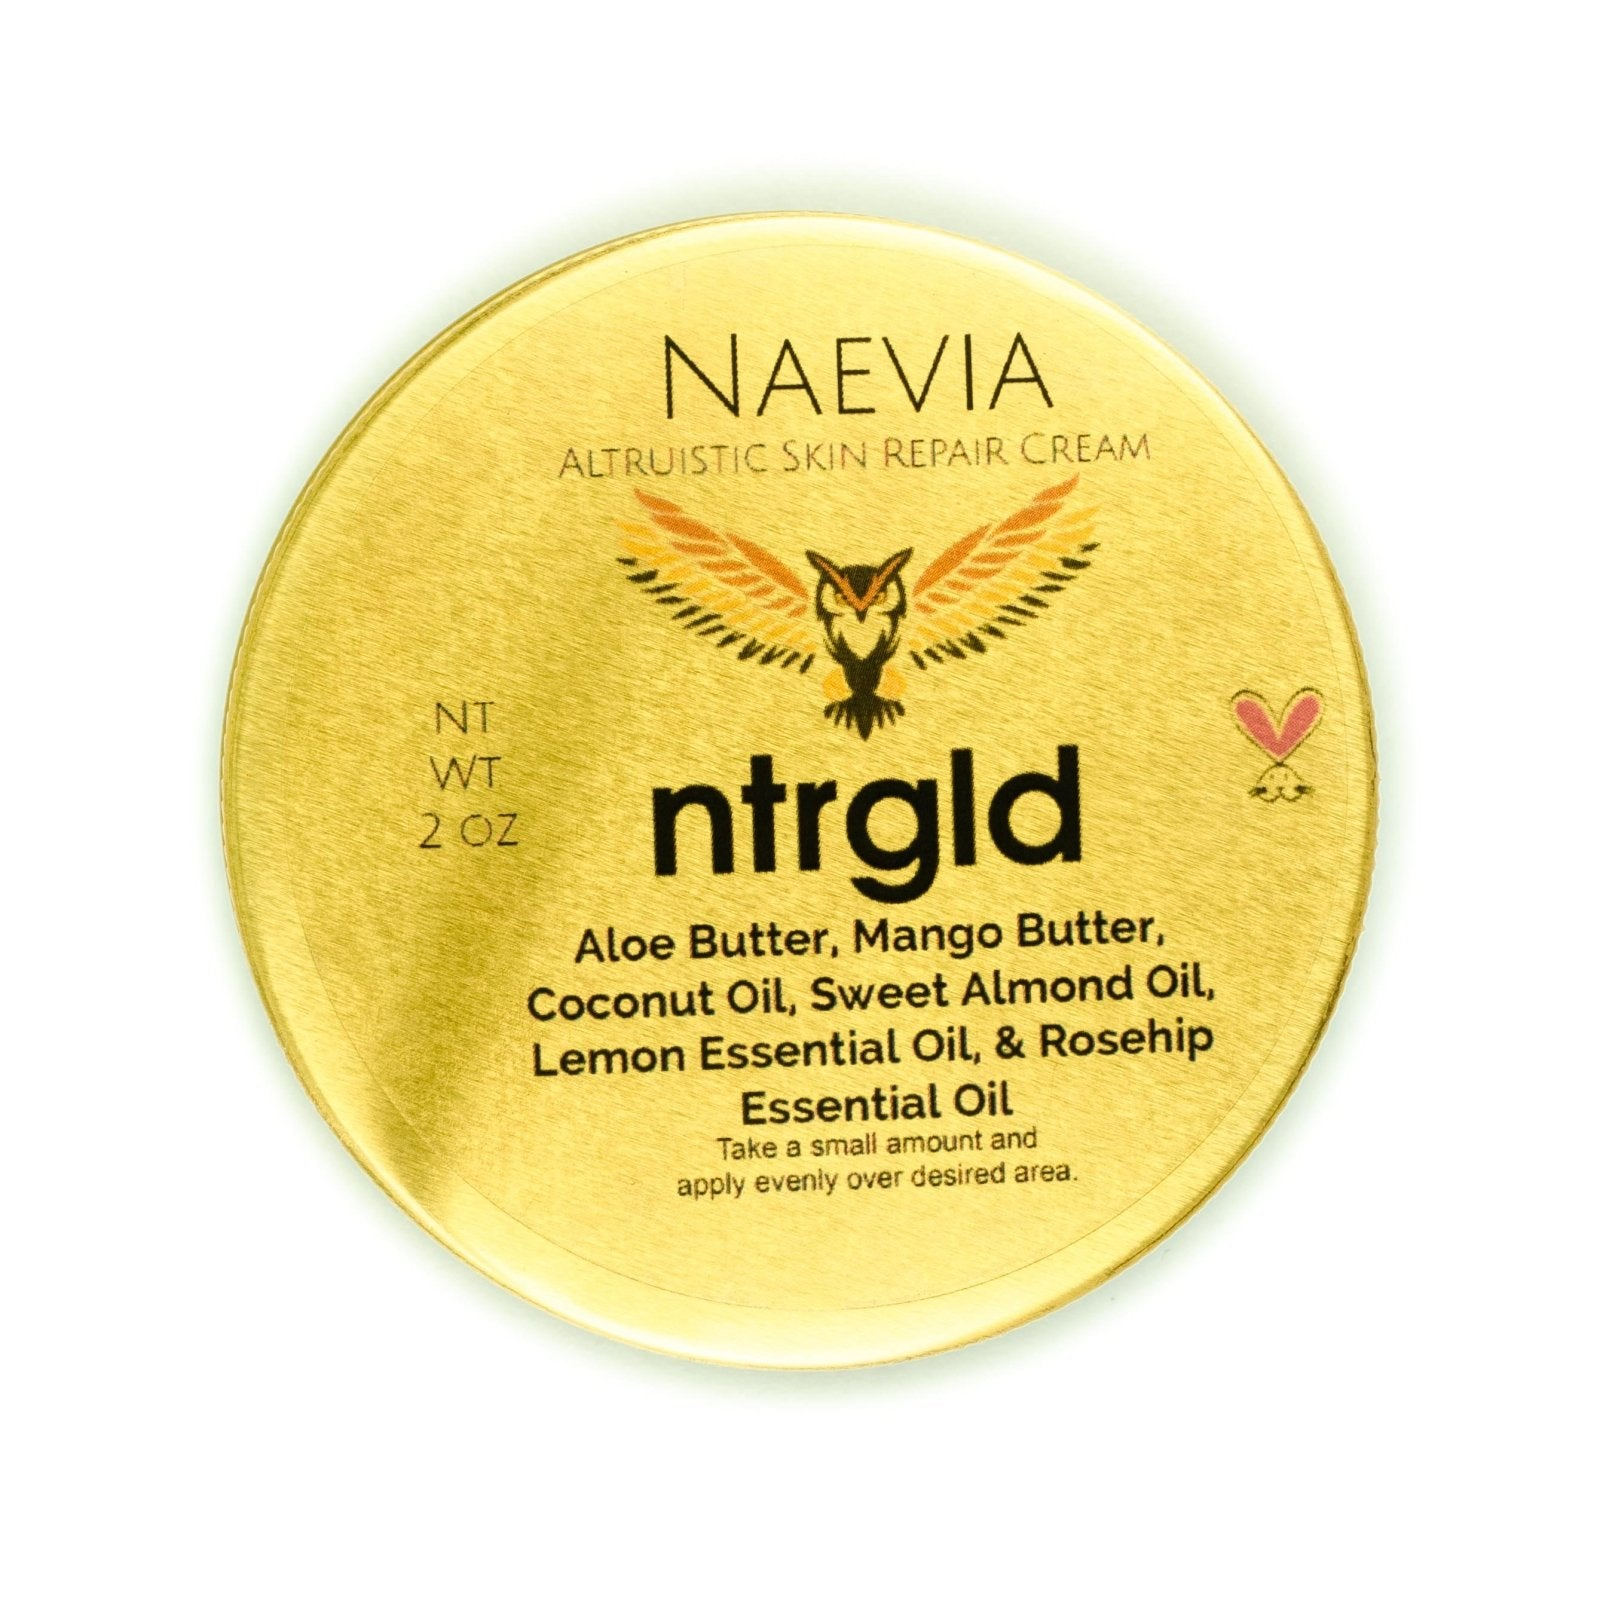 Naevia - Skin Repair Cream - Neter Gold - NTRGLD - NETER GOLD - All natural body care products designed to increase your natural godly glow. - hair growth - eczema - dry skin